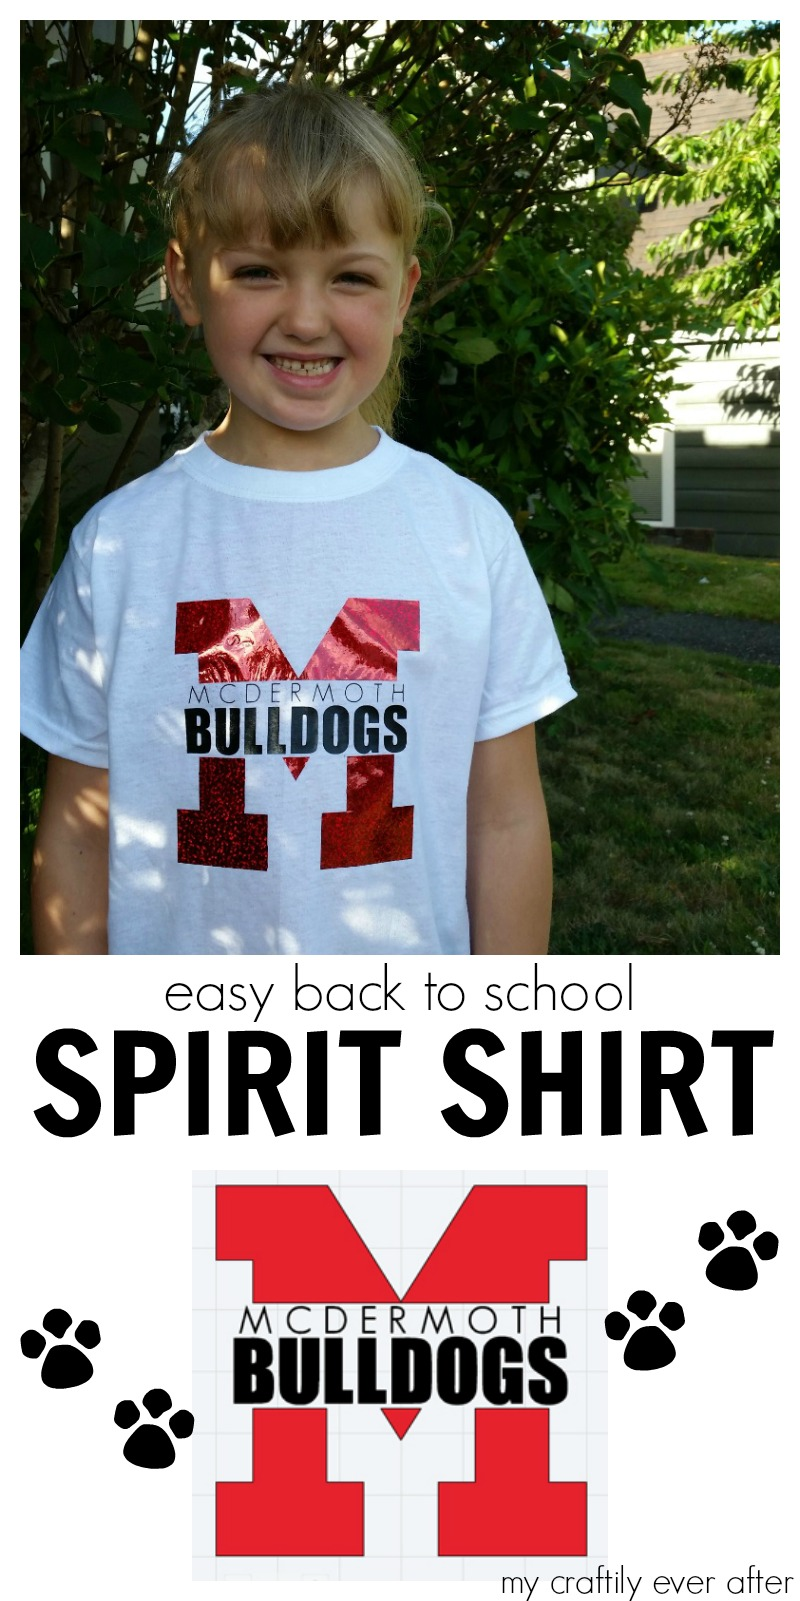 easy back to school spirit shirt #freetobe #ad